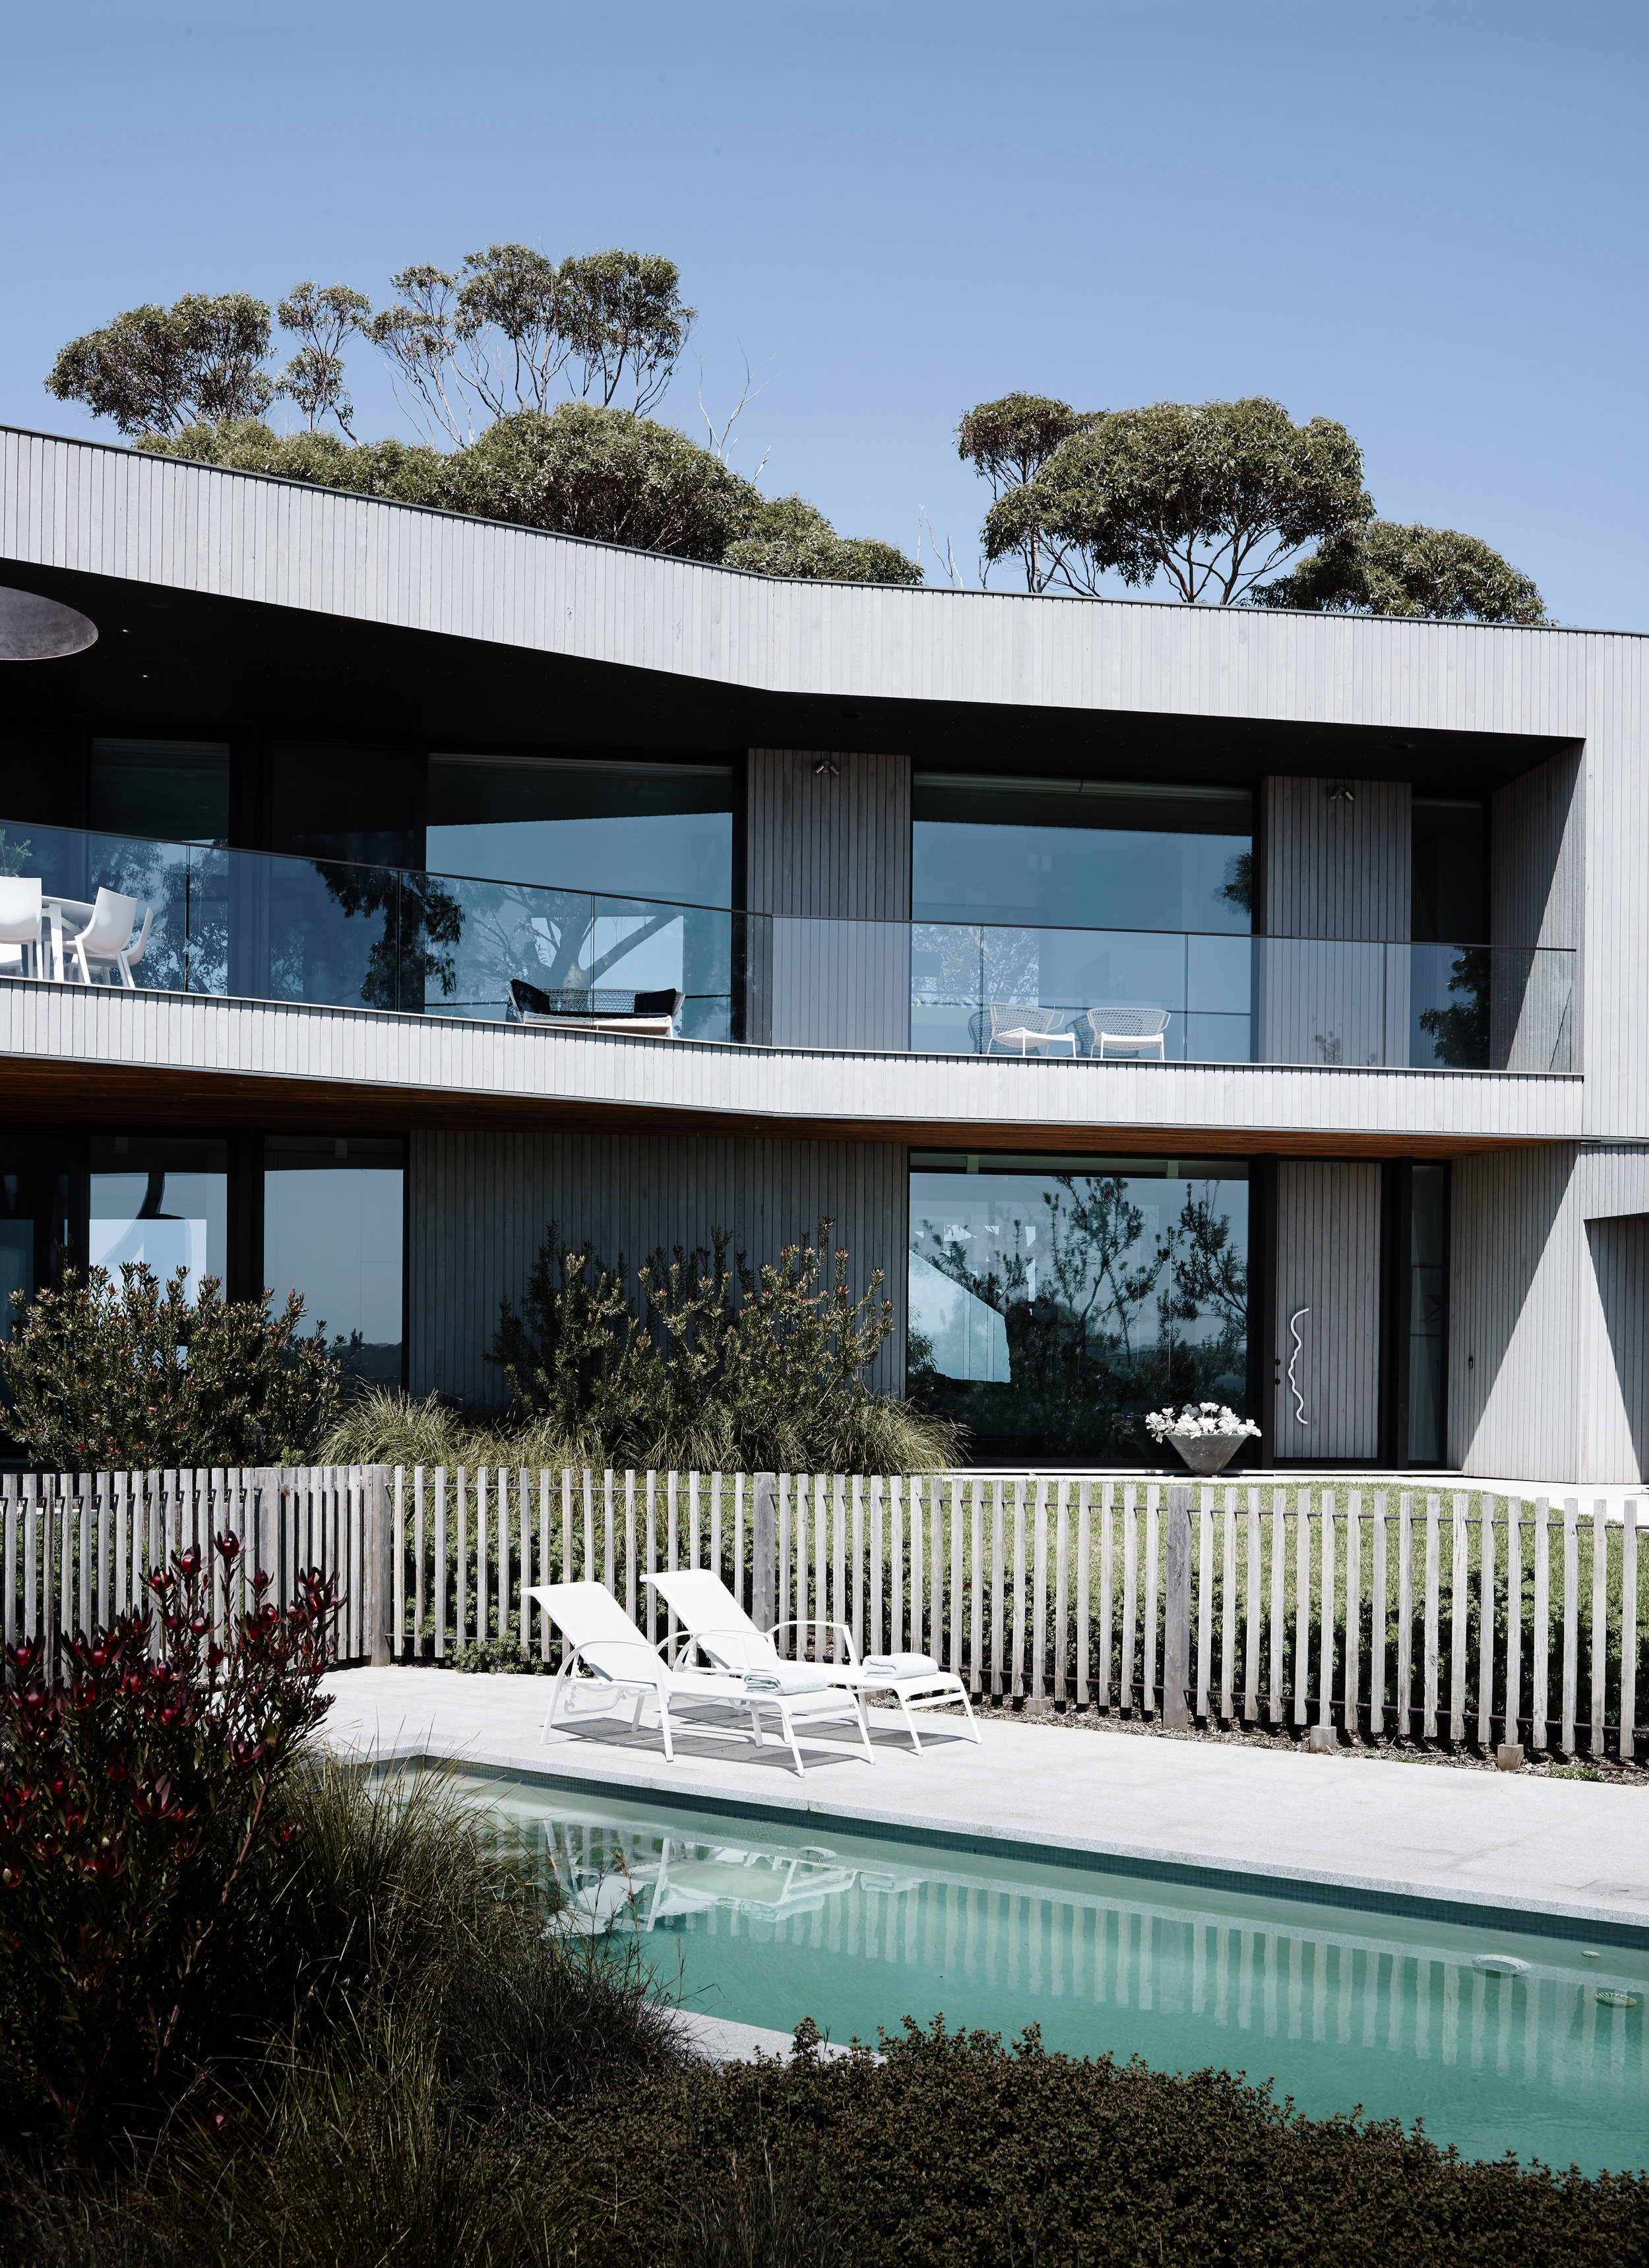 The Bluff House on the Mornington Peninsula in Victoria has views to the vineyards and the ocean and required an interior that responded to those views without detracting from them. Photography © Mark Roper.